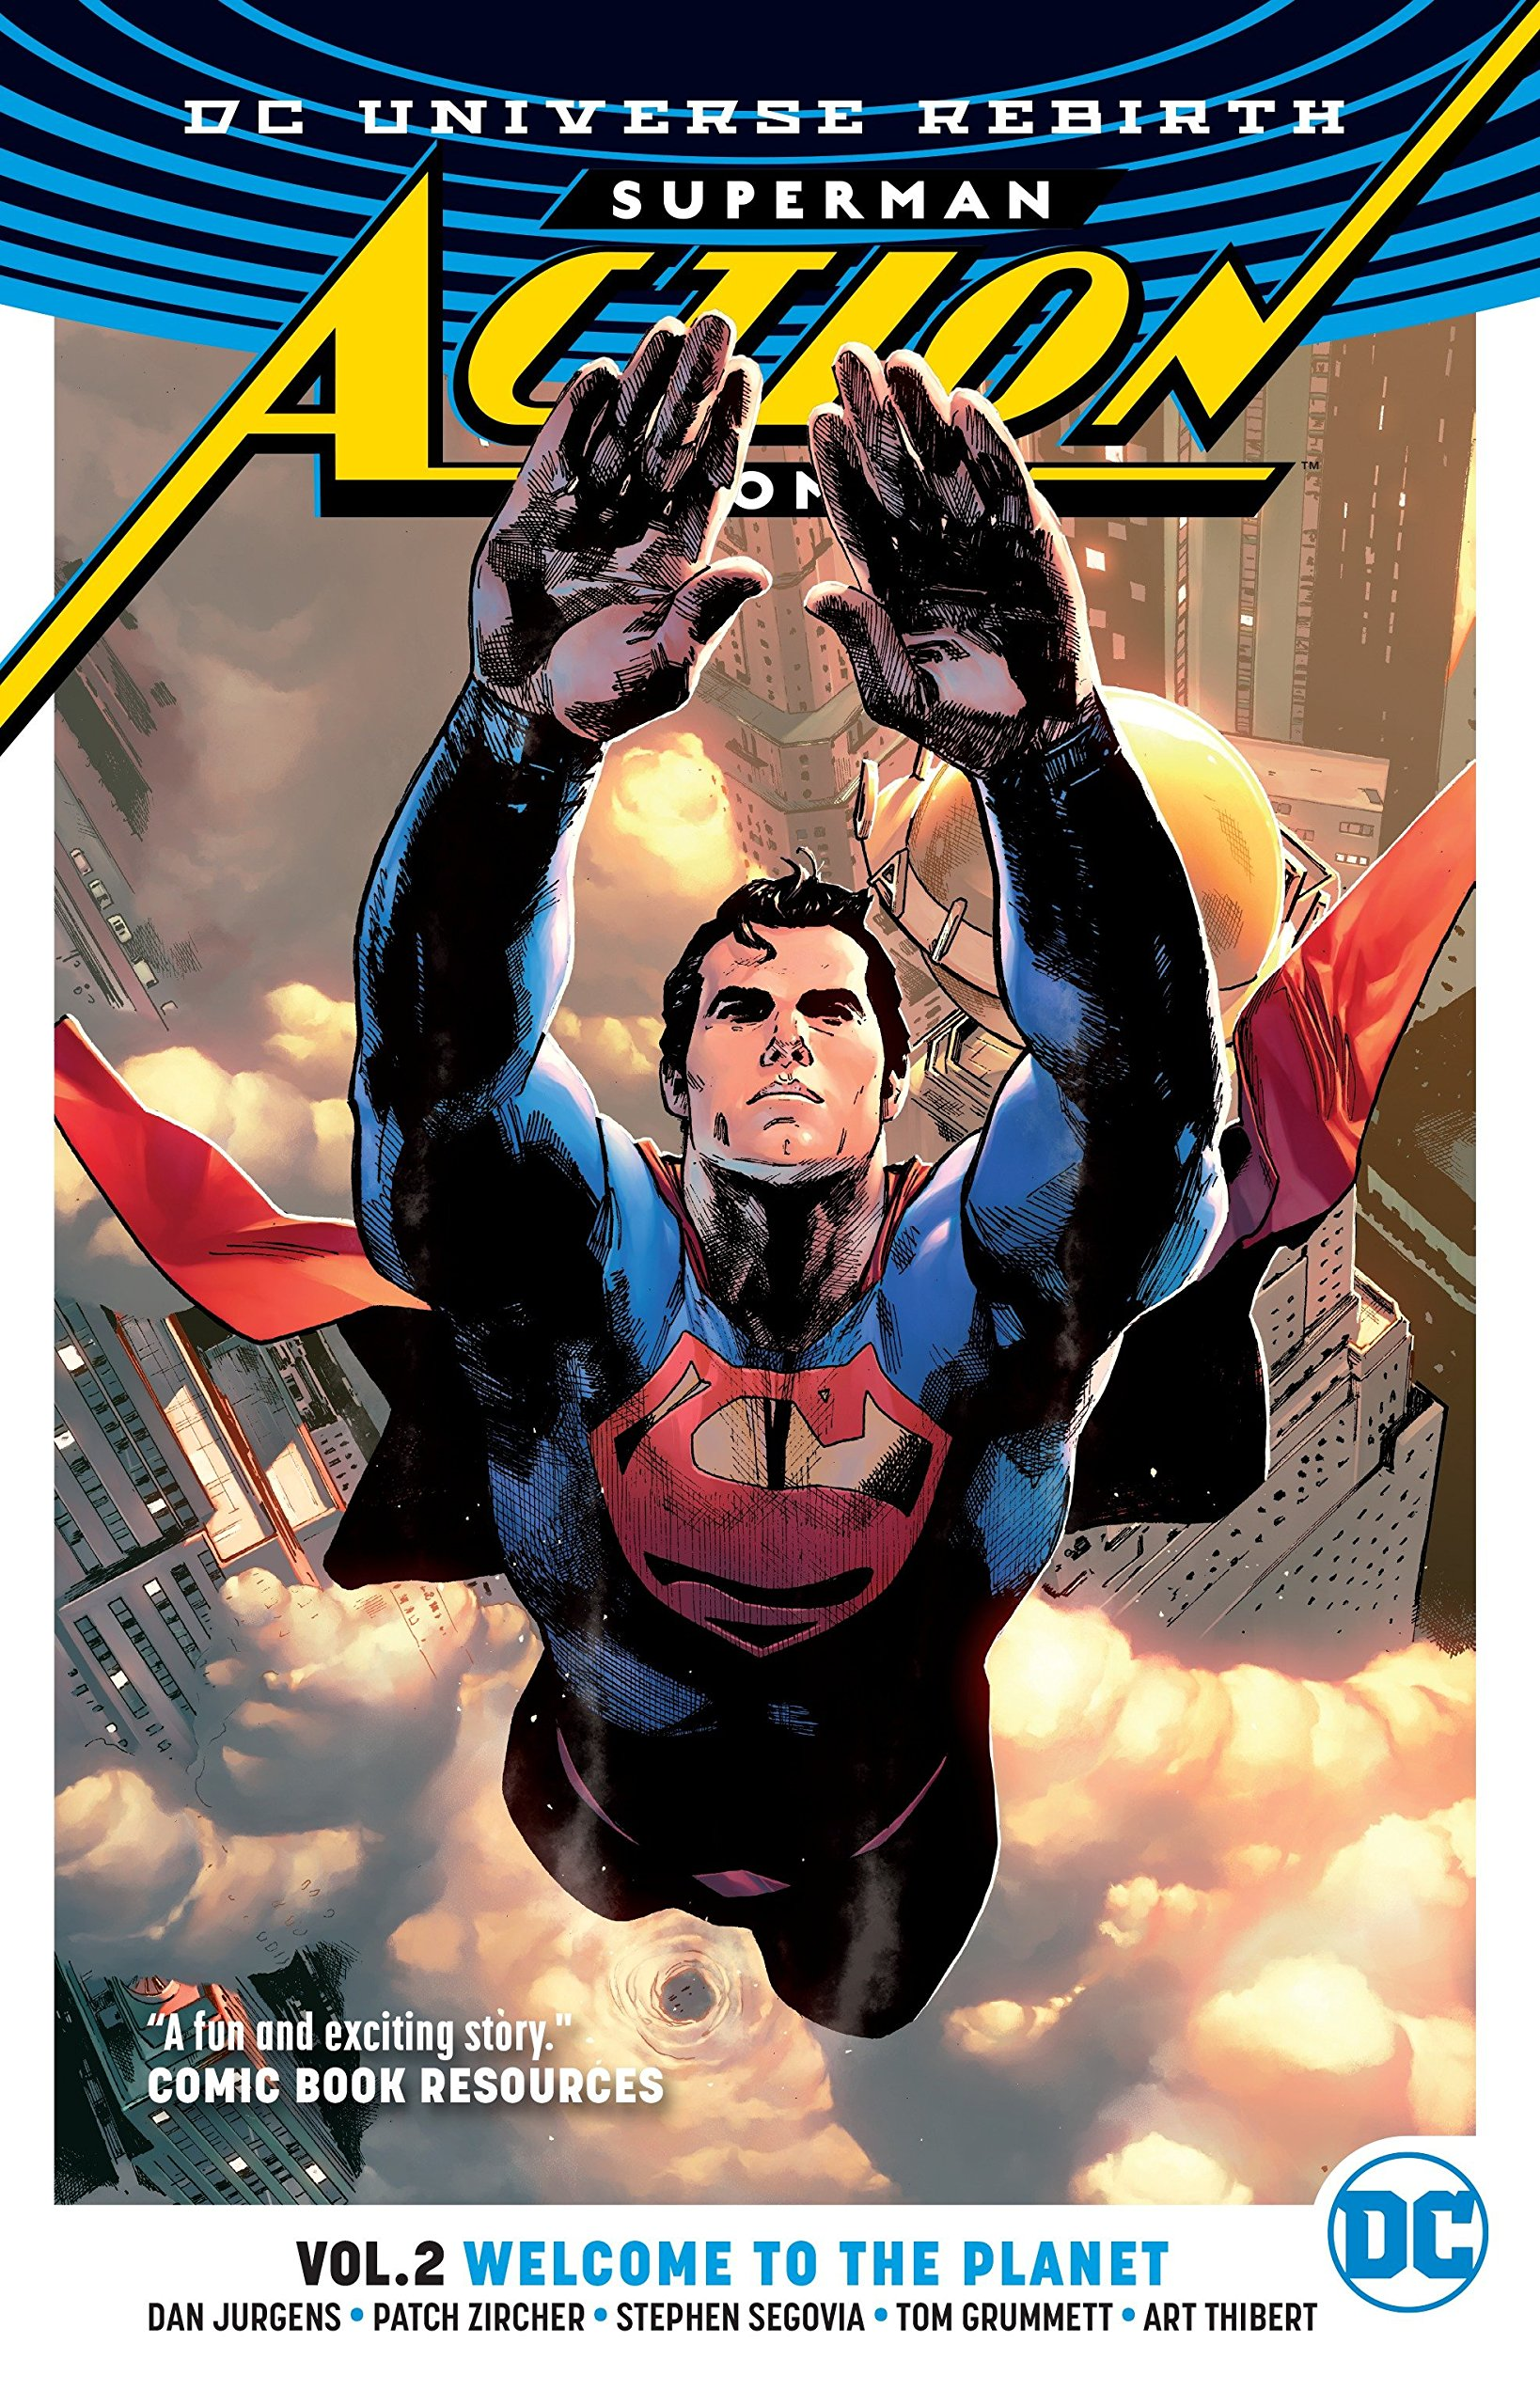 Superman: Action Comics Vol. 2: Welcome to the Planet (Rebirth) (Superman Action Comics: DC Universe Rebirth) by DC COMICS